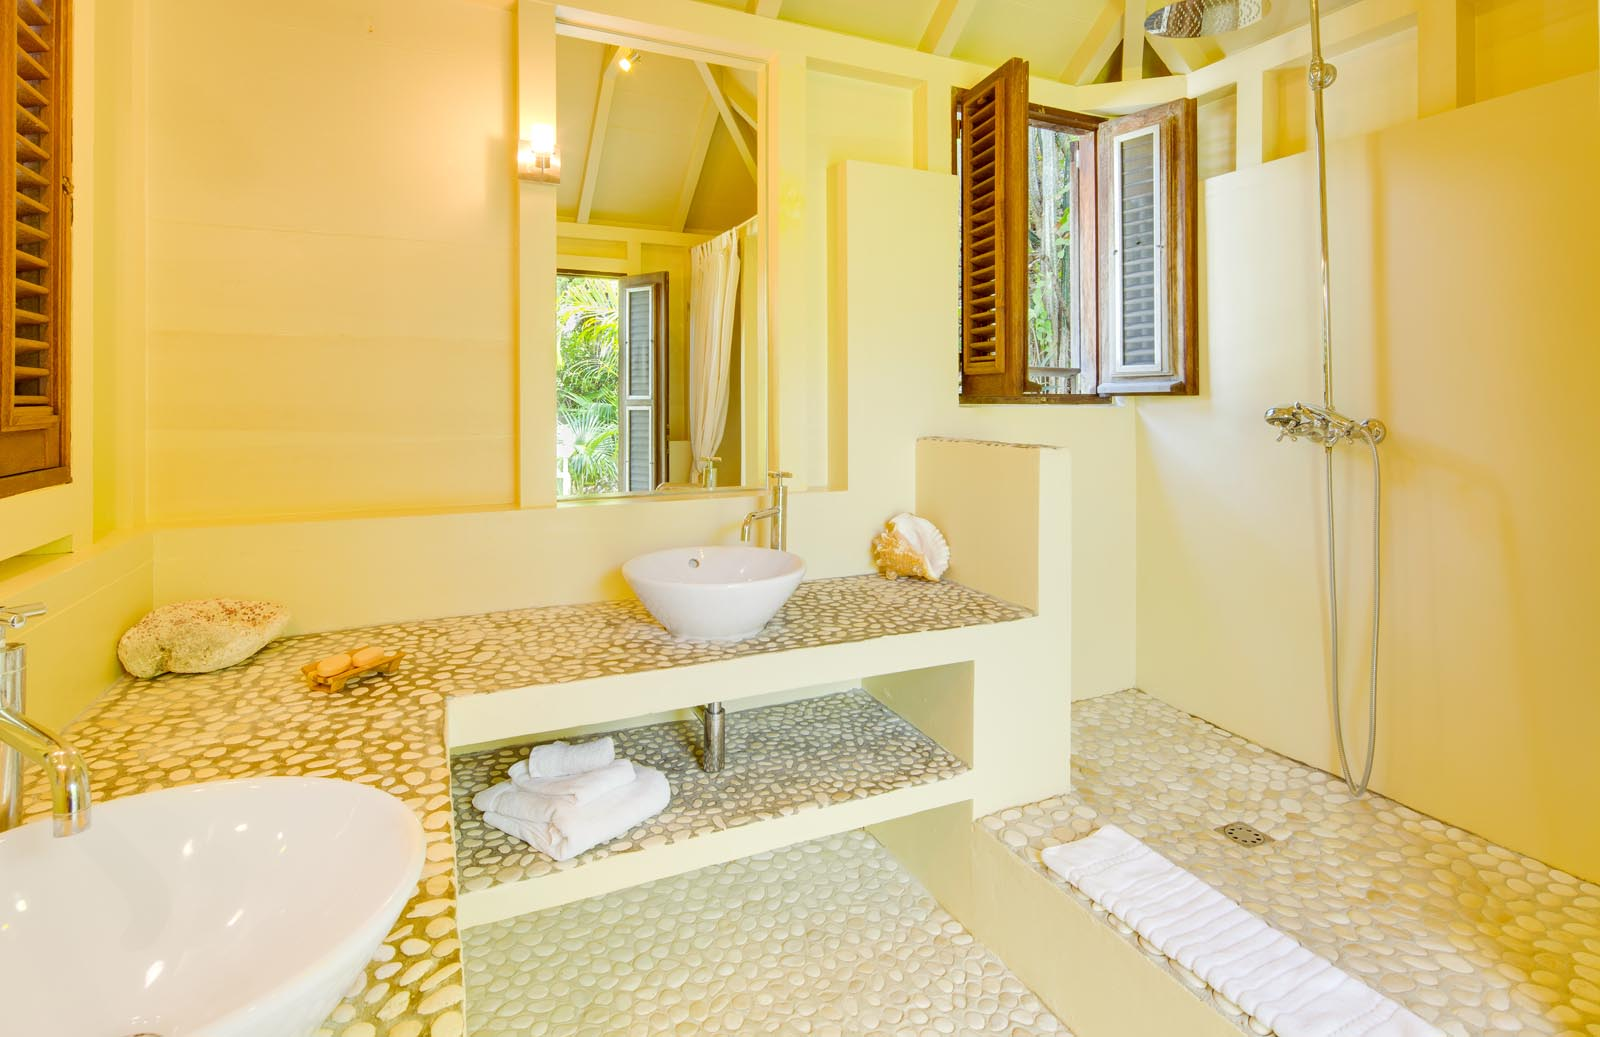 Each of the bedrooms at this St. Barts luxury villa rental have private bathrooms.